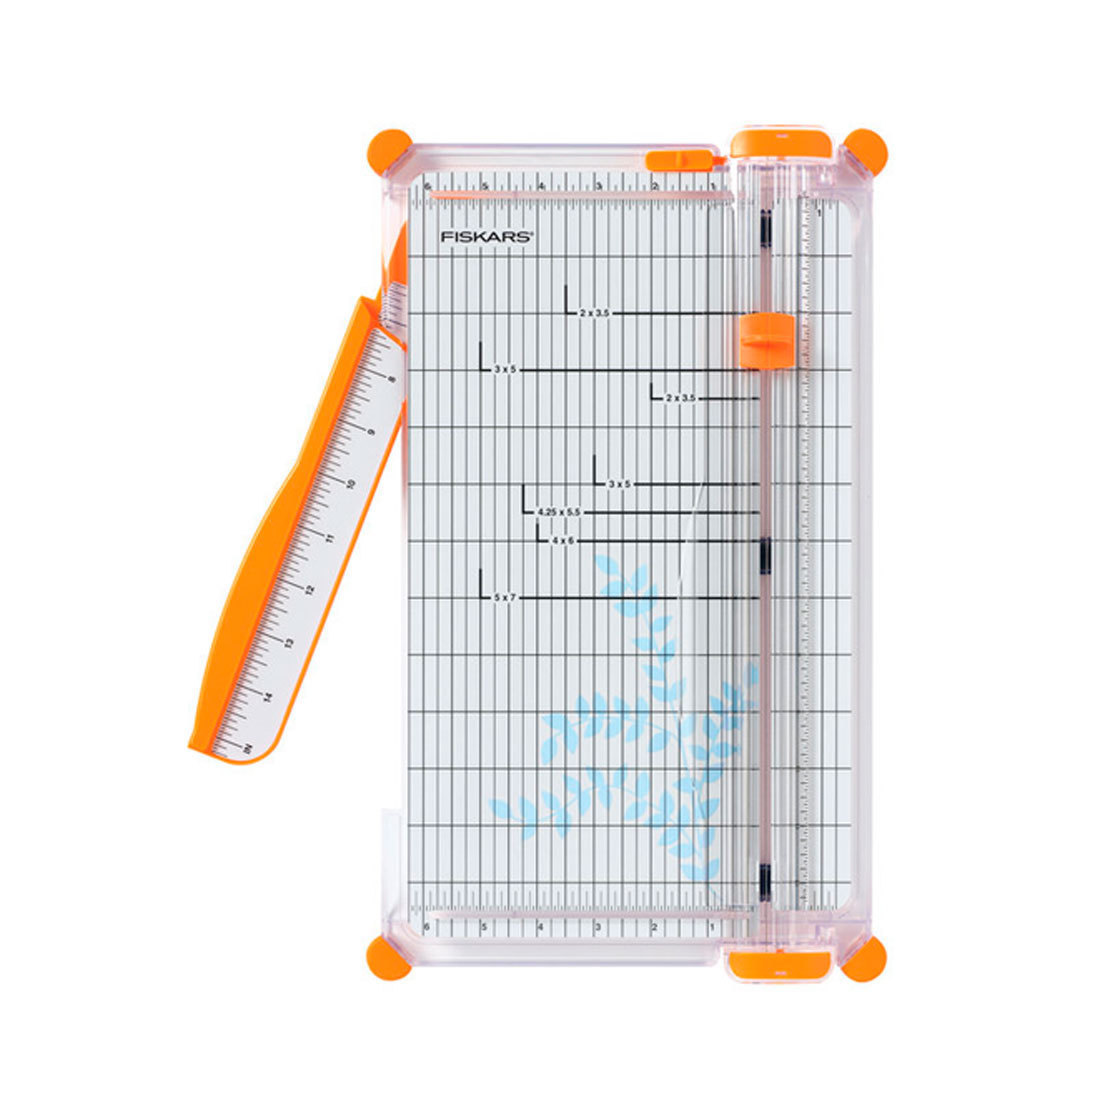 Fiskars SureCut Deluxe Paper Trimmer available at Craft Warehouse